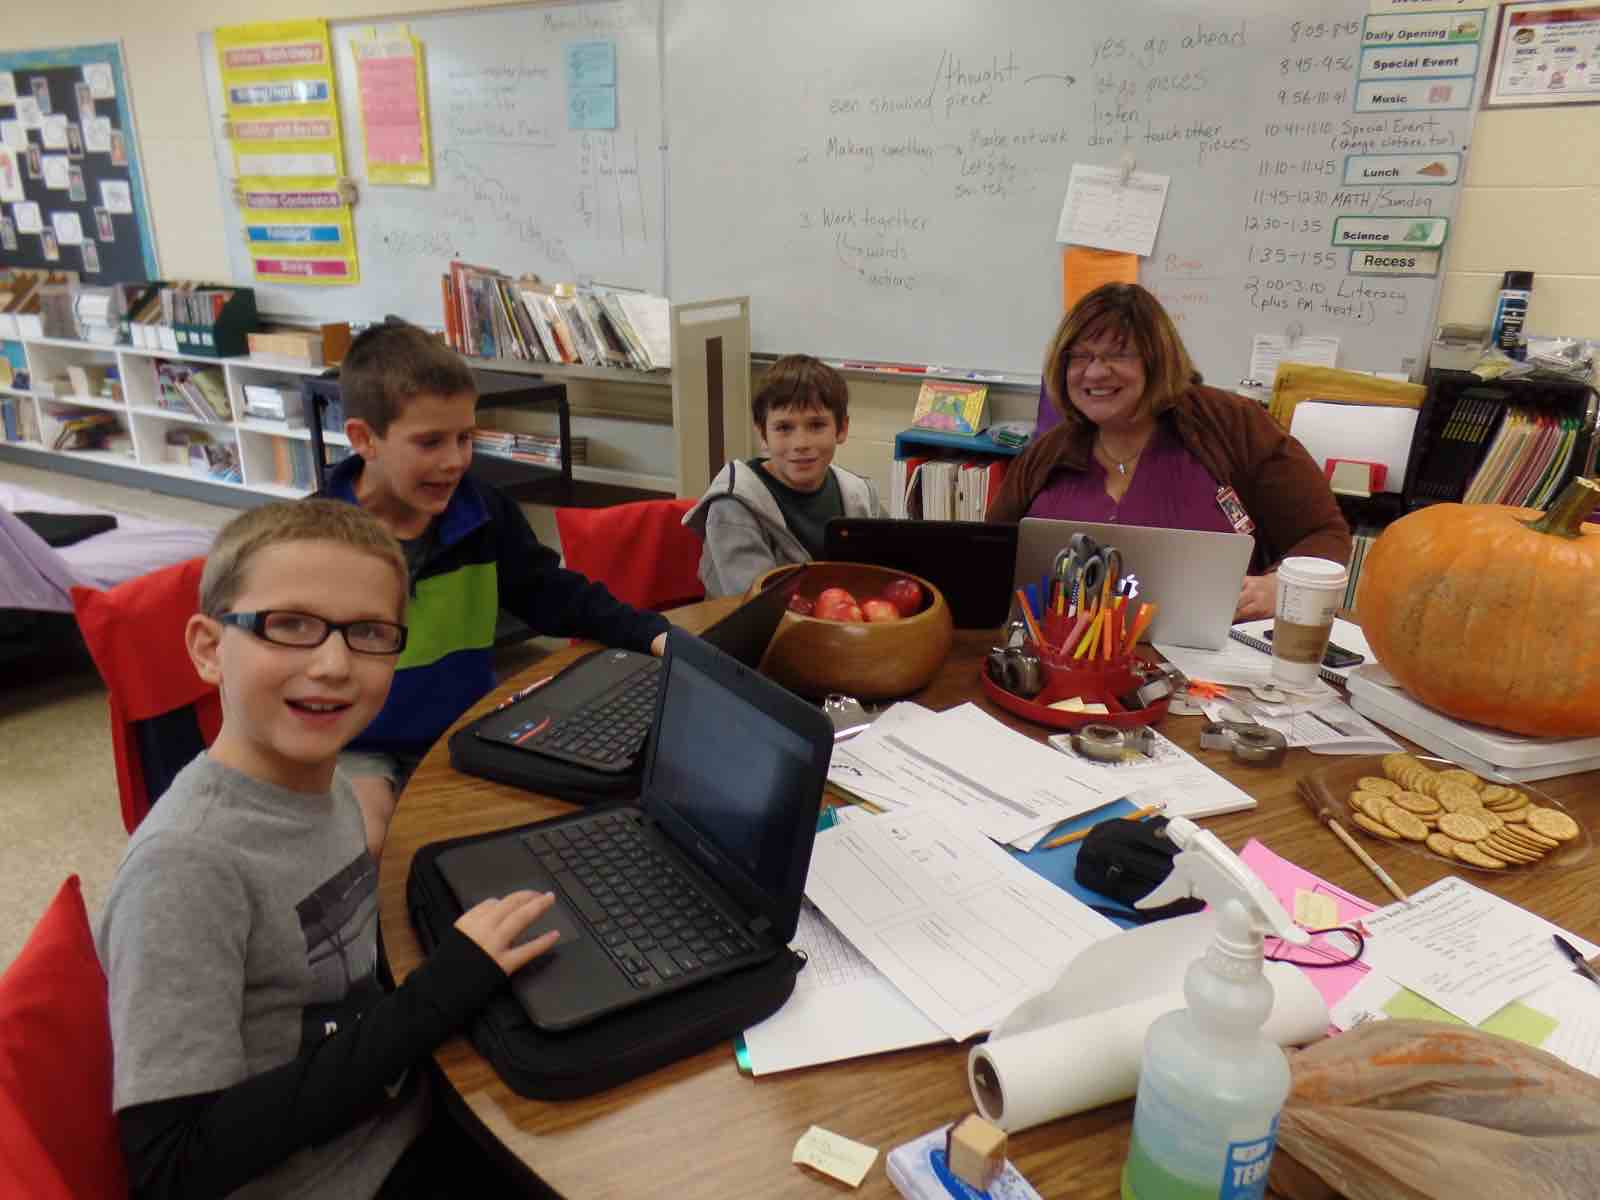 Ms. Val Cleveland, a gifted and talented teacher, works with N.J.S.D. students.